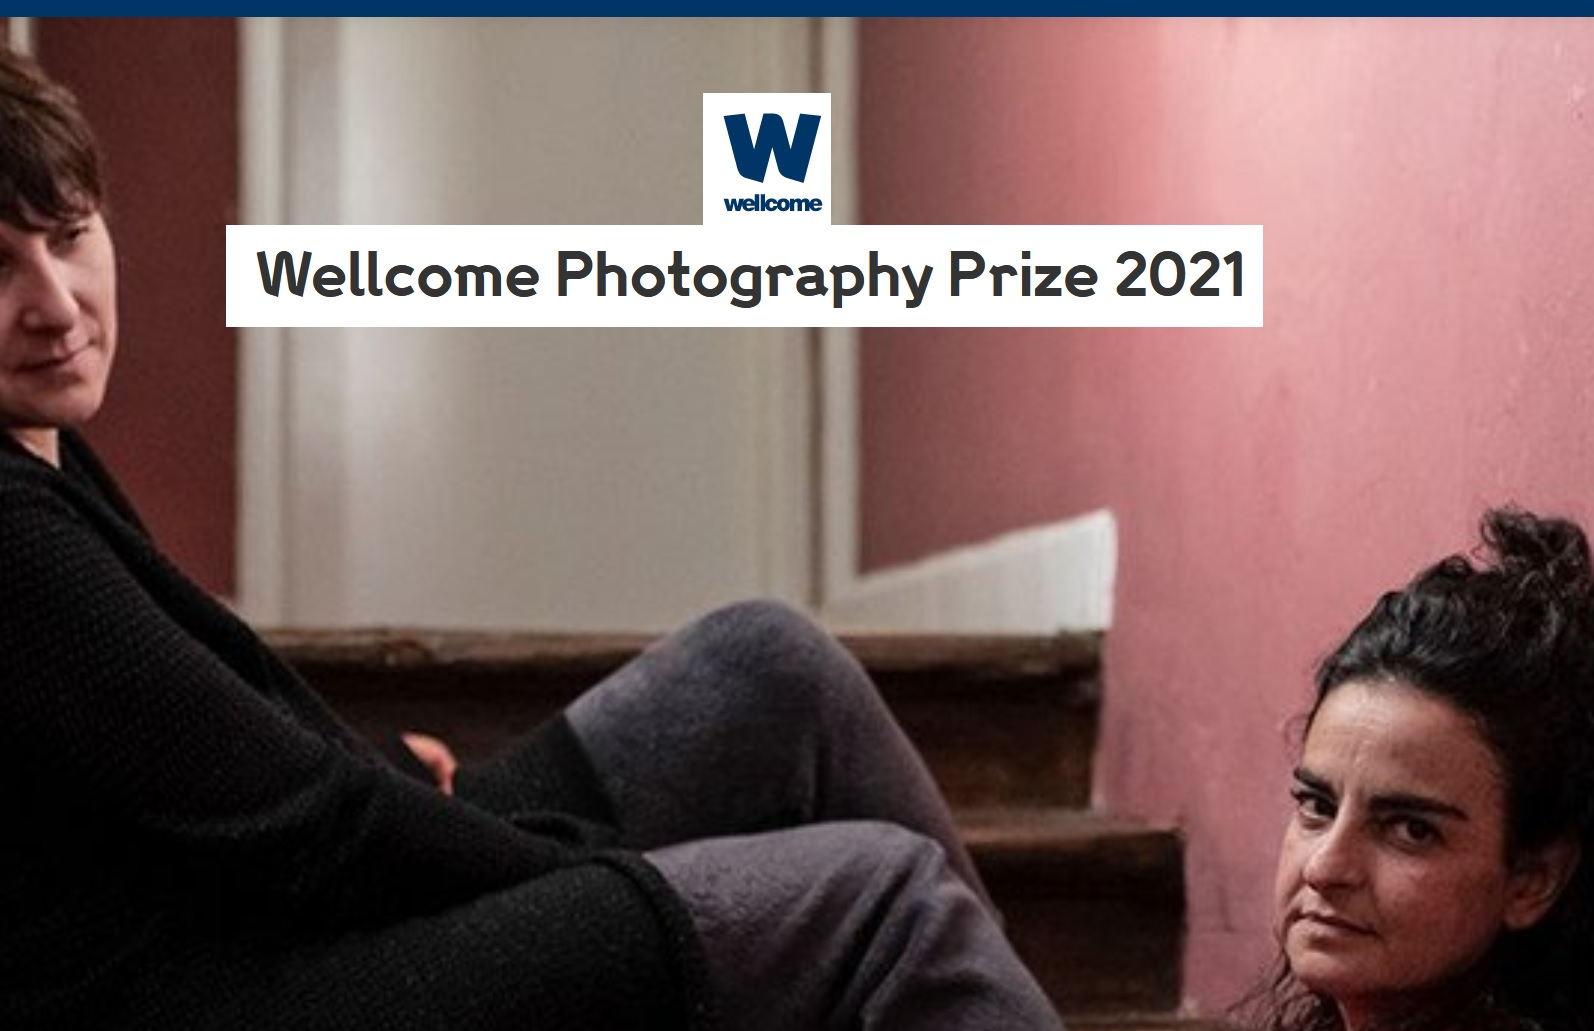 Wellcome Photography Prize 2021 - logo